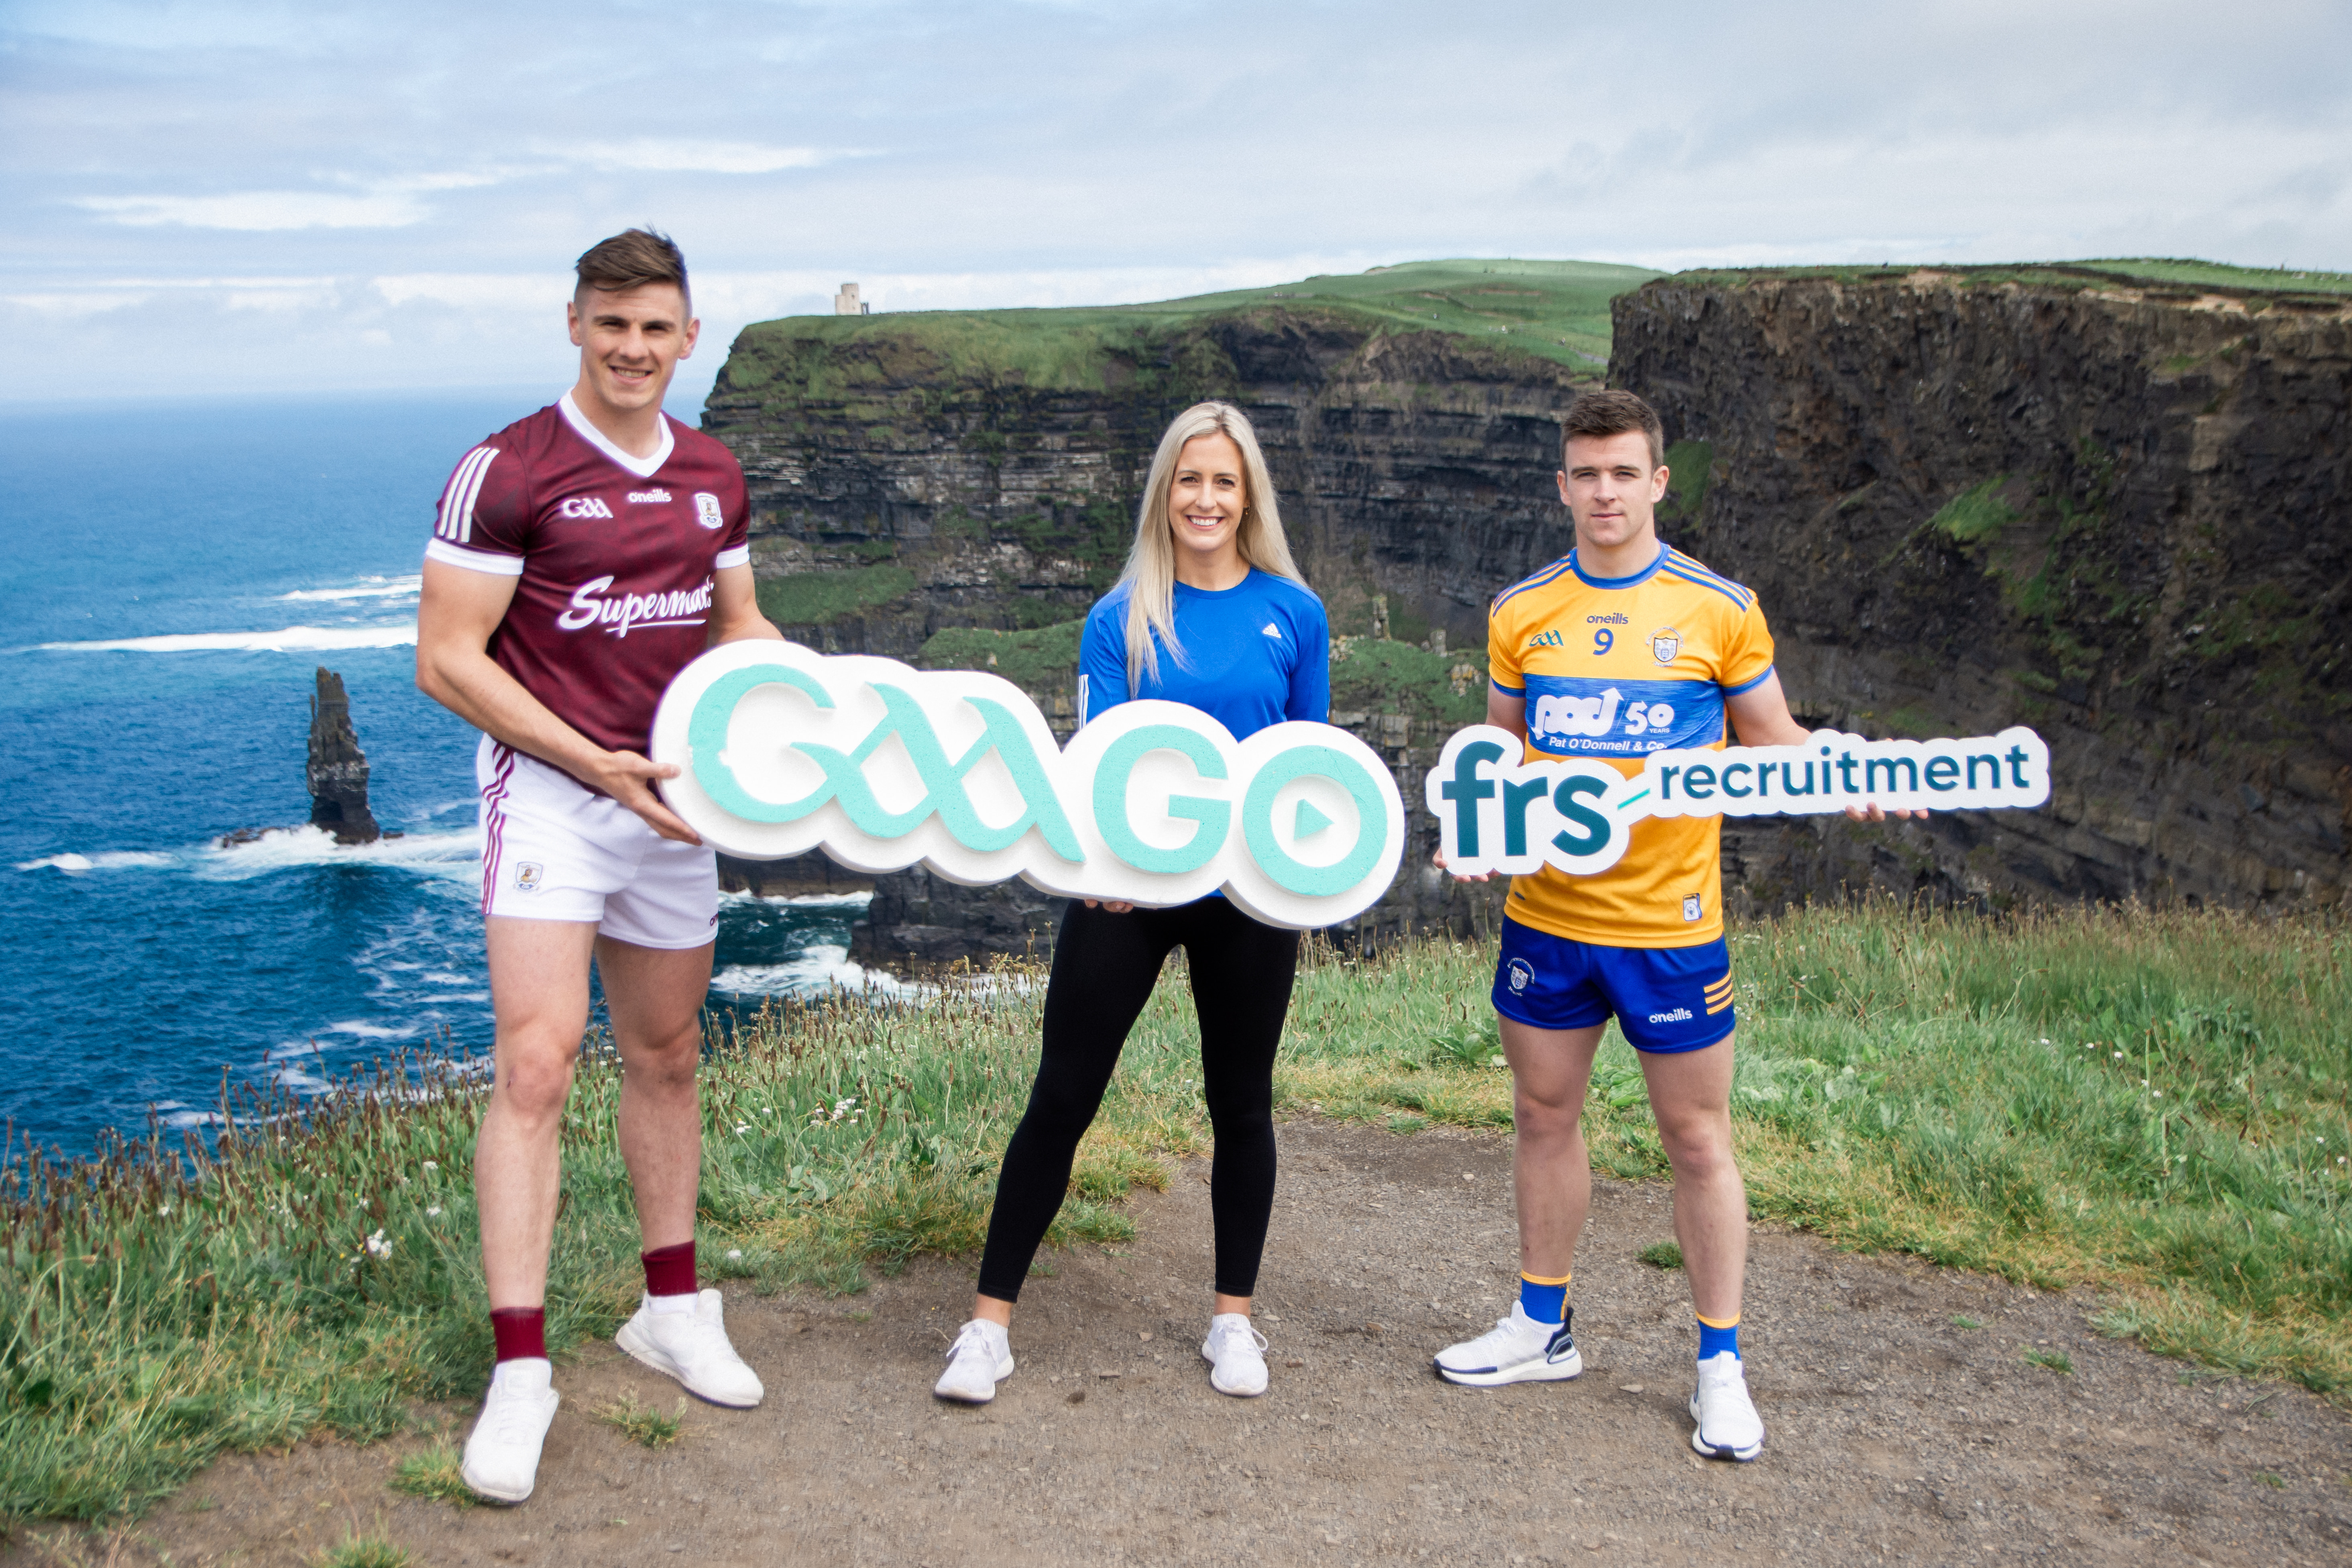 Tony Kelly, Brid Stack & Shane Walsh Announced as Ambassadors for our 70 Mins of Home Campaign